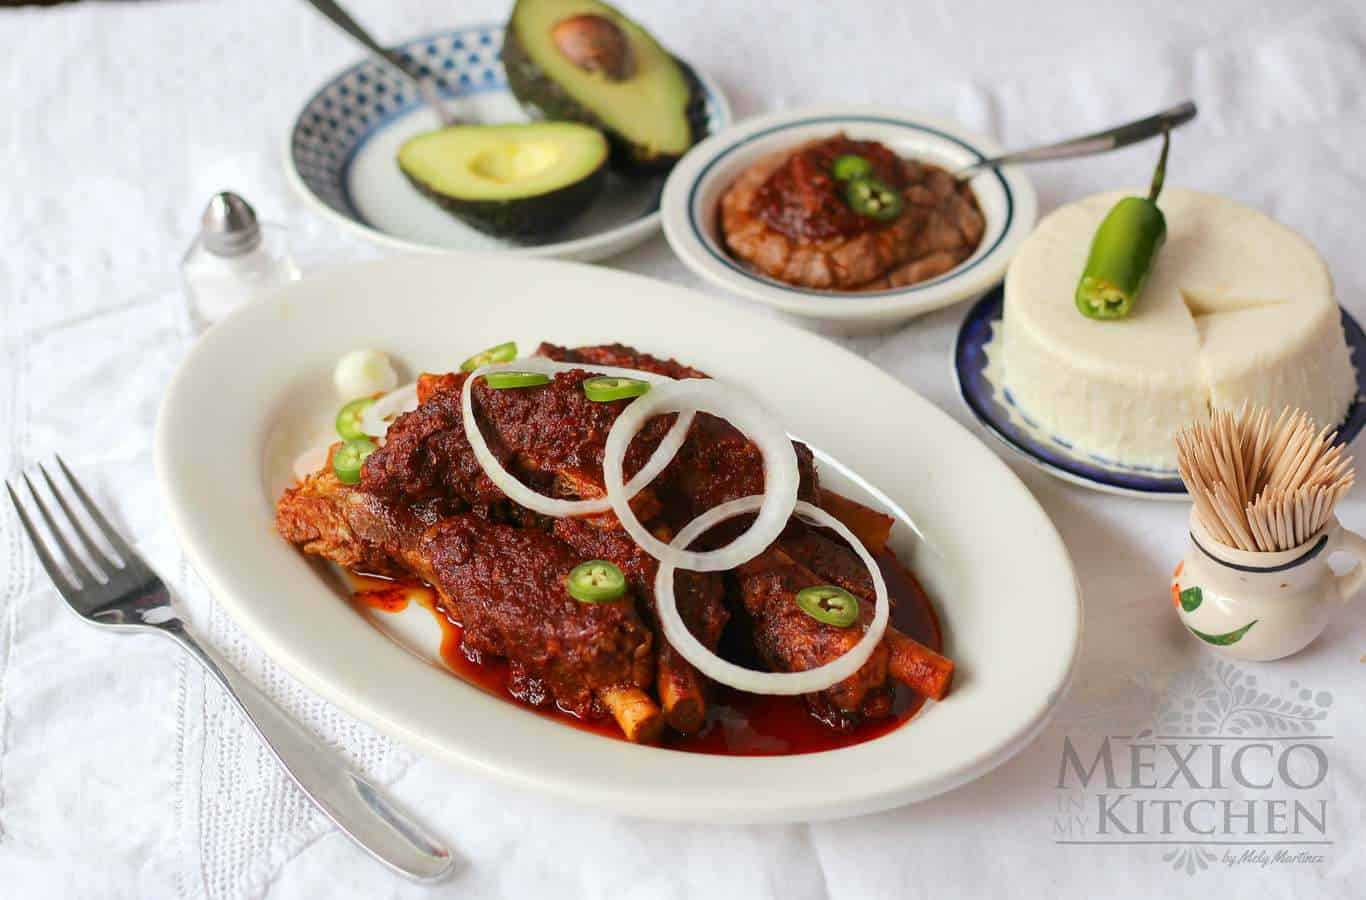 Pork ribs in adobo recipe - 2 Mexican recipe